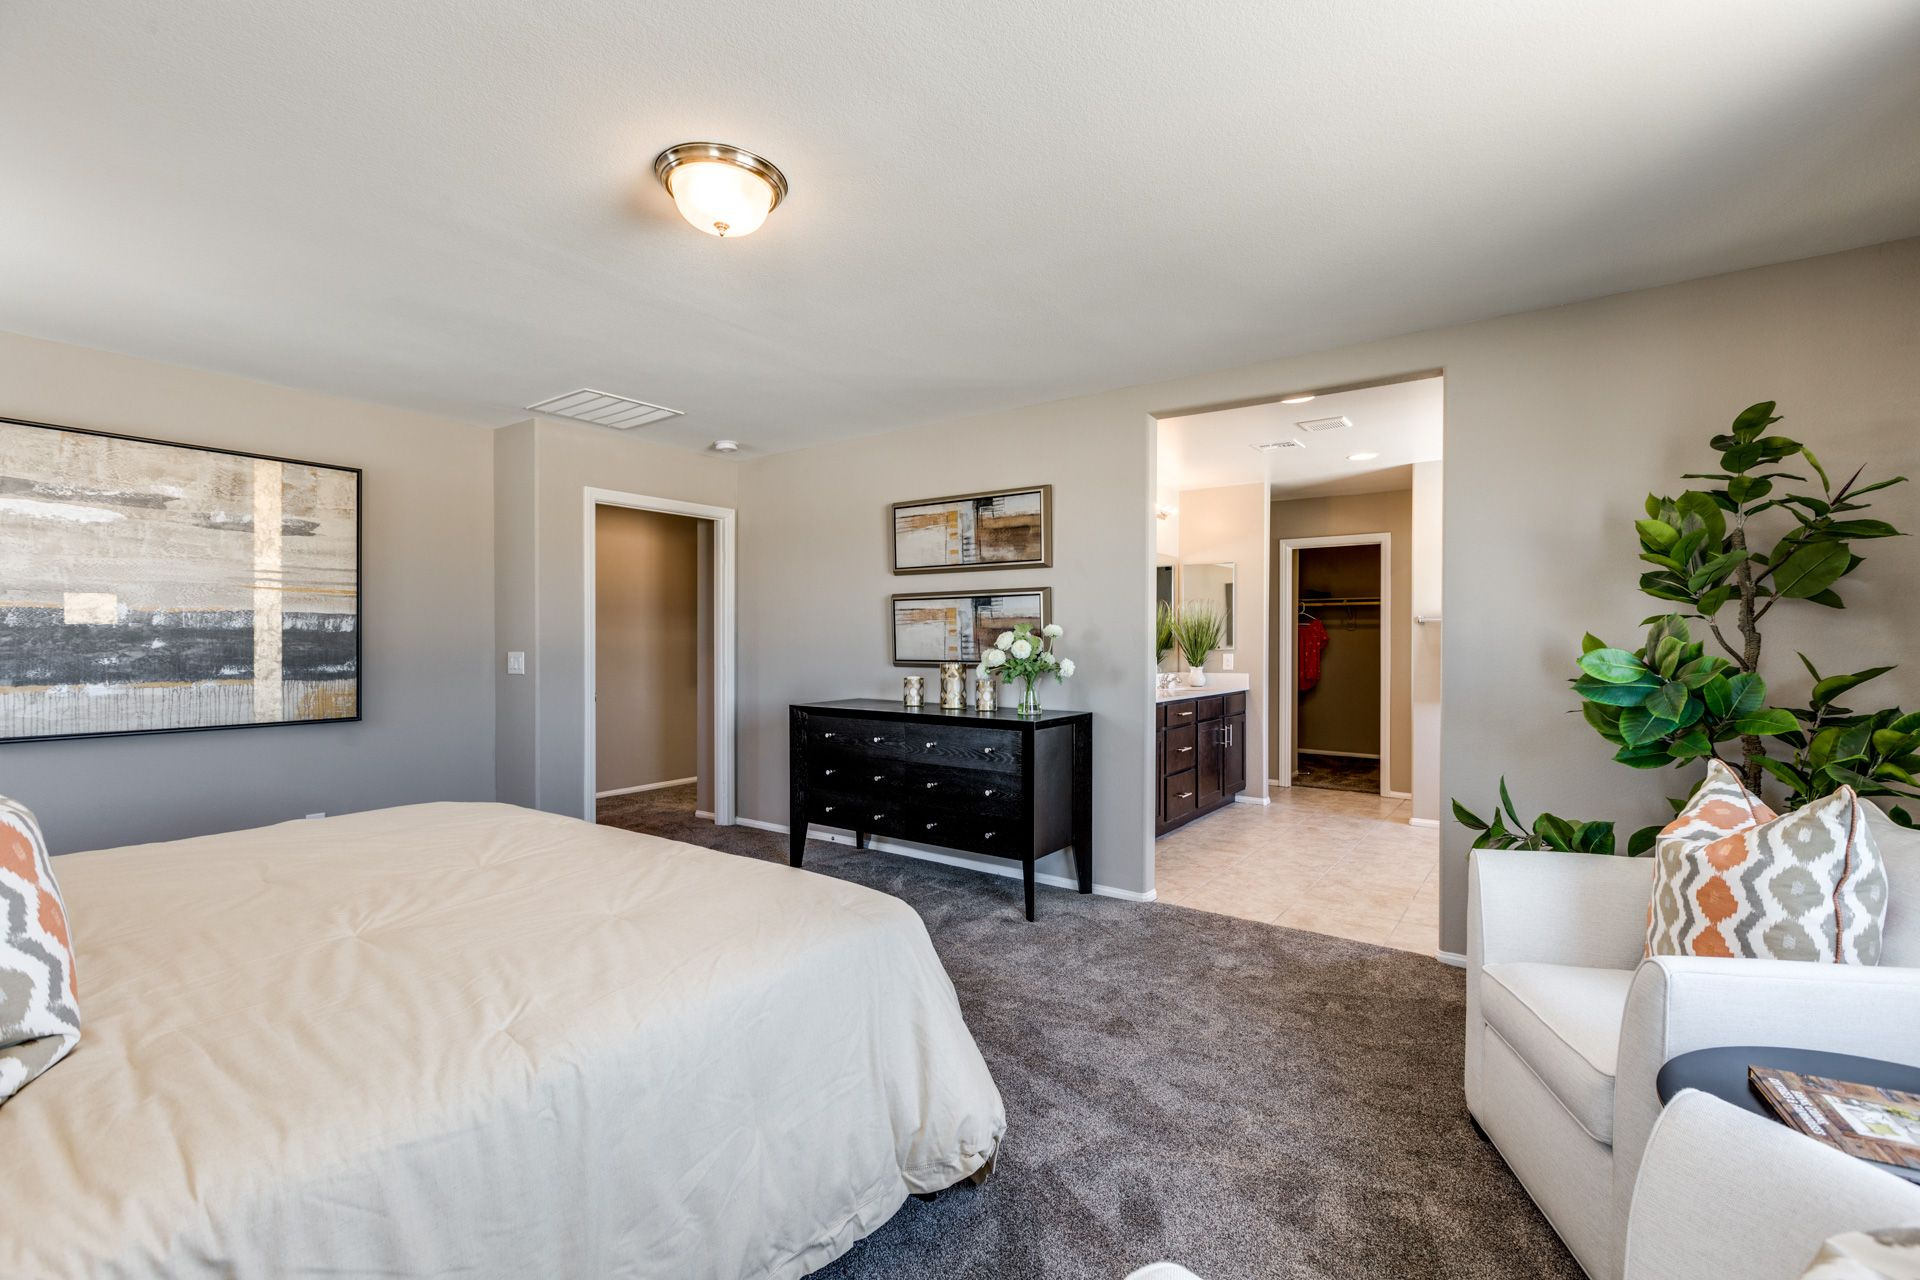 Bedroom featured in the Residence 1924 By Harmony Homes - Las Vegas in Las Vegas, NV